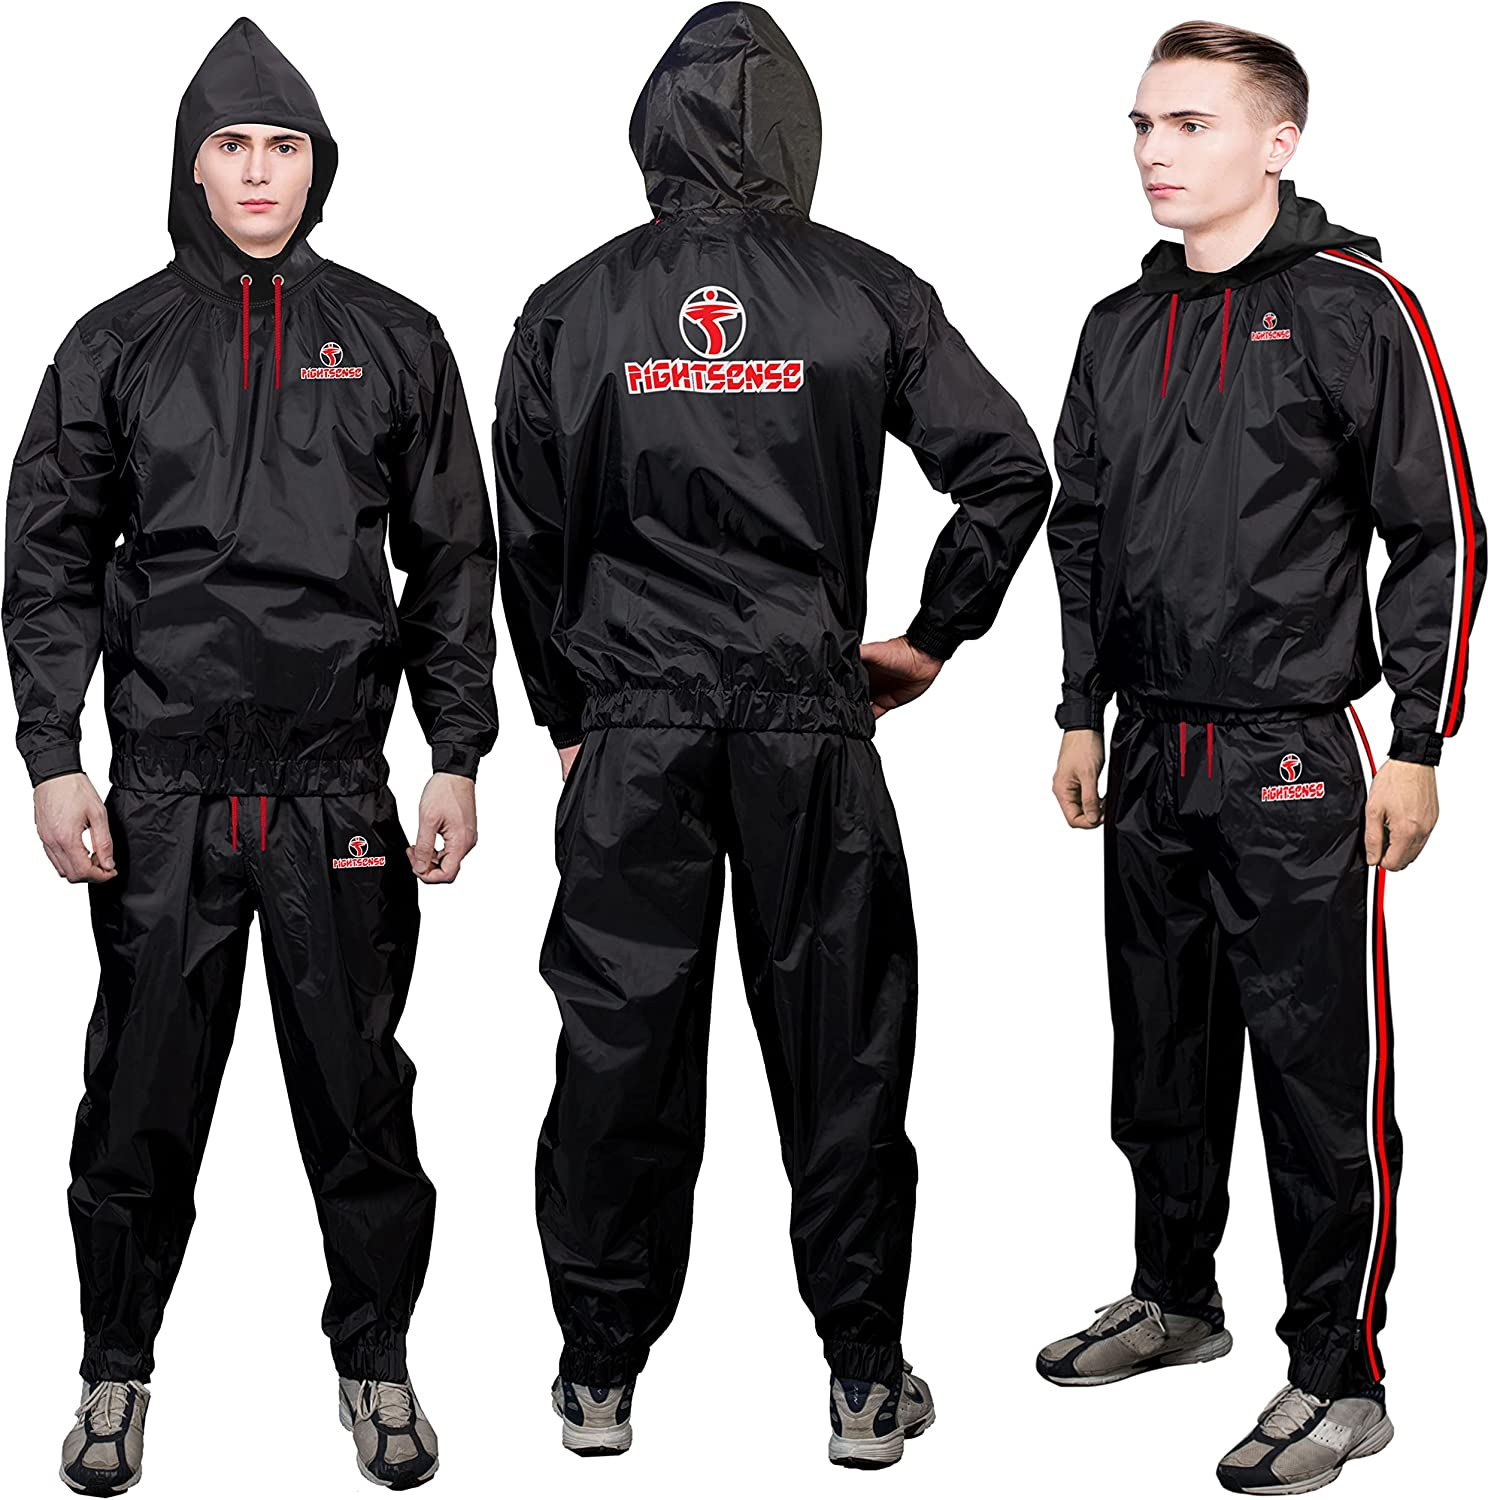 Phoenix Mall FIGHTSENSE MMA Sauna Suit for Women Anti-Rip and Selling and selling Men Waterproof